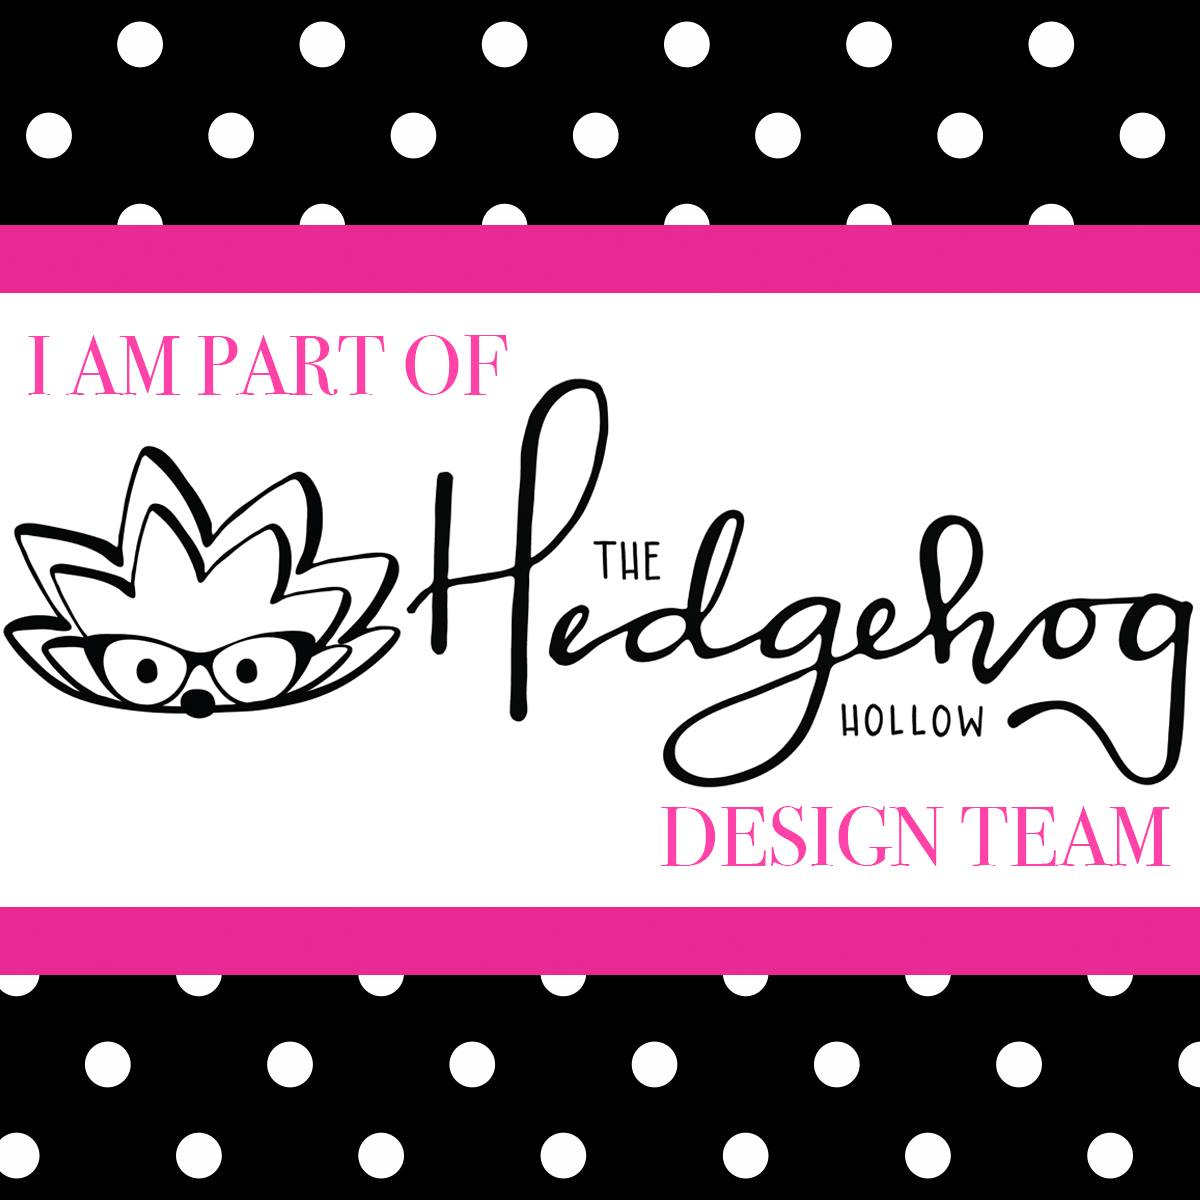 2018 HedgeHog Hollow Design Team